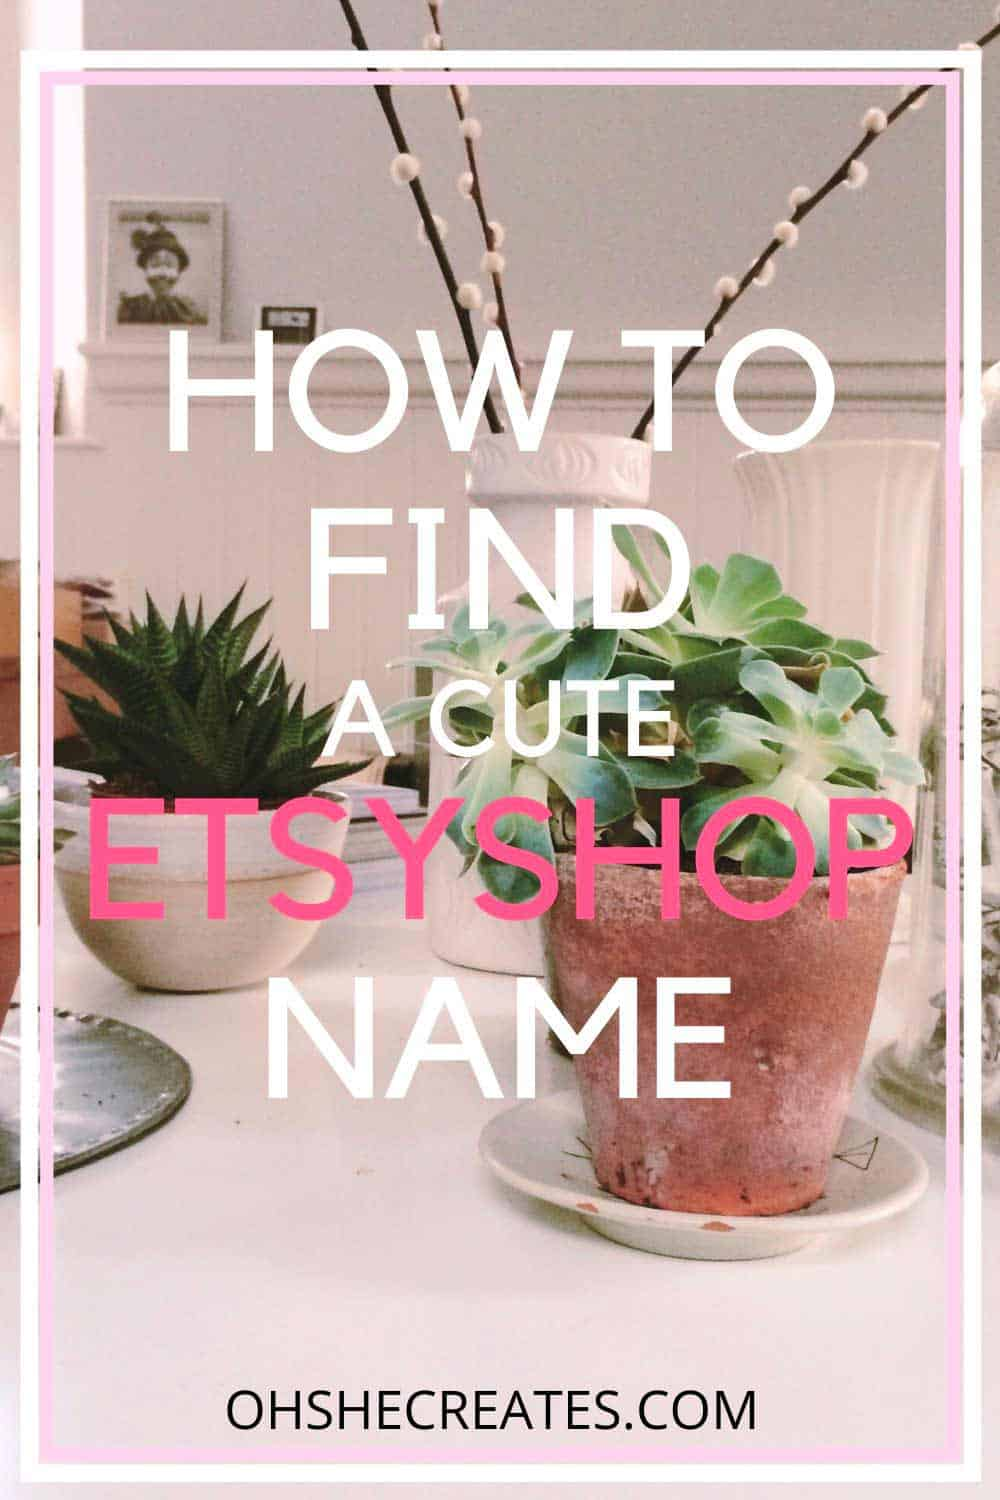 Text How to find a cute Etsy shop name with a cactus plant background